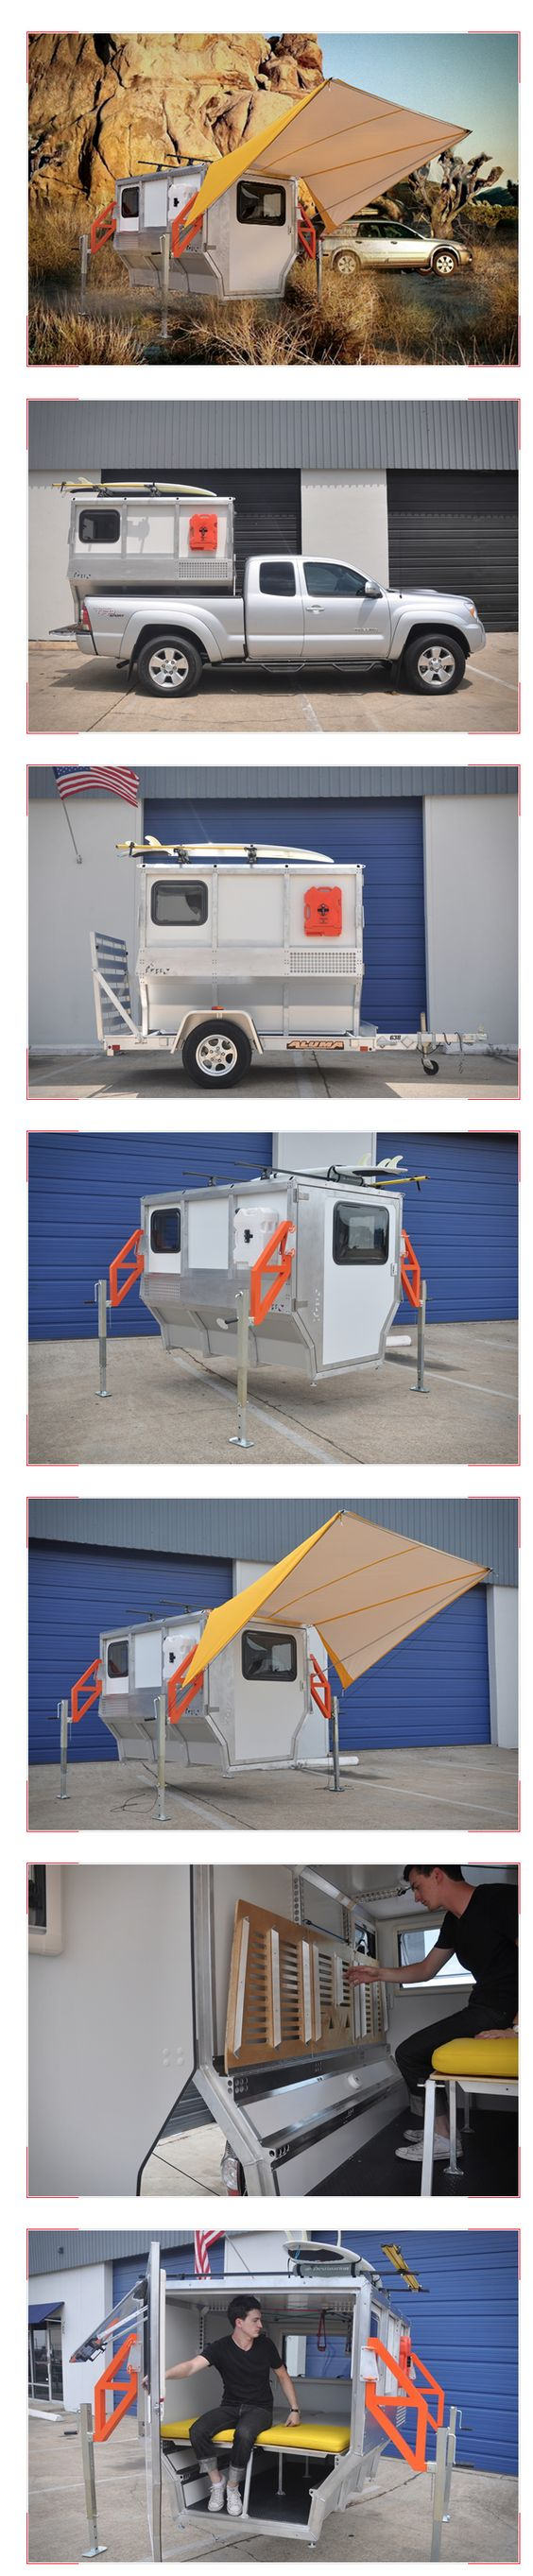 Firely Cricket Trailer tent http://www.taxafirefly.com: